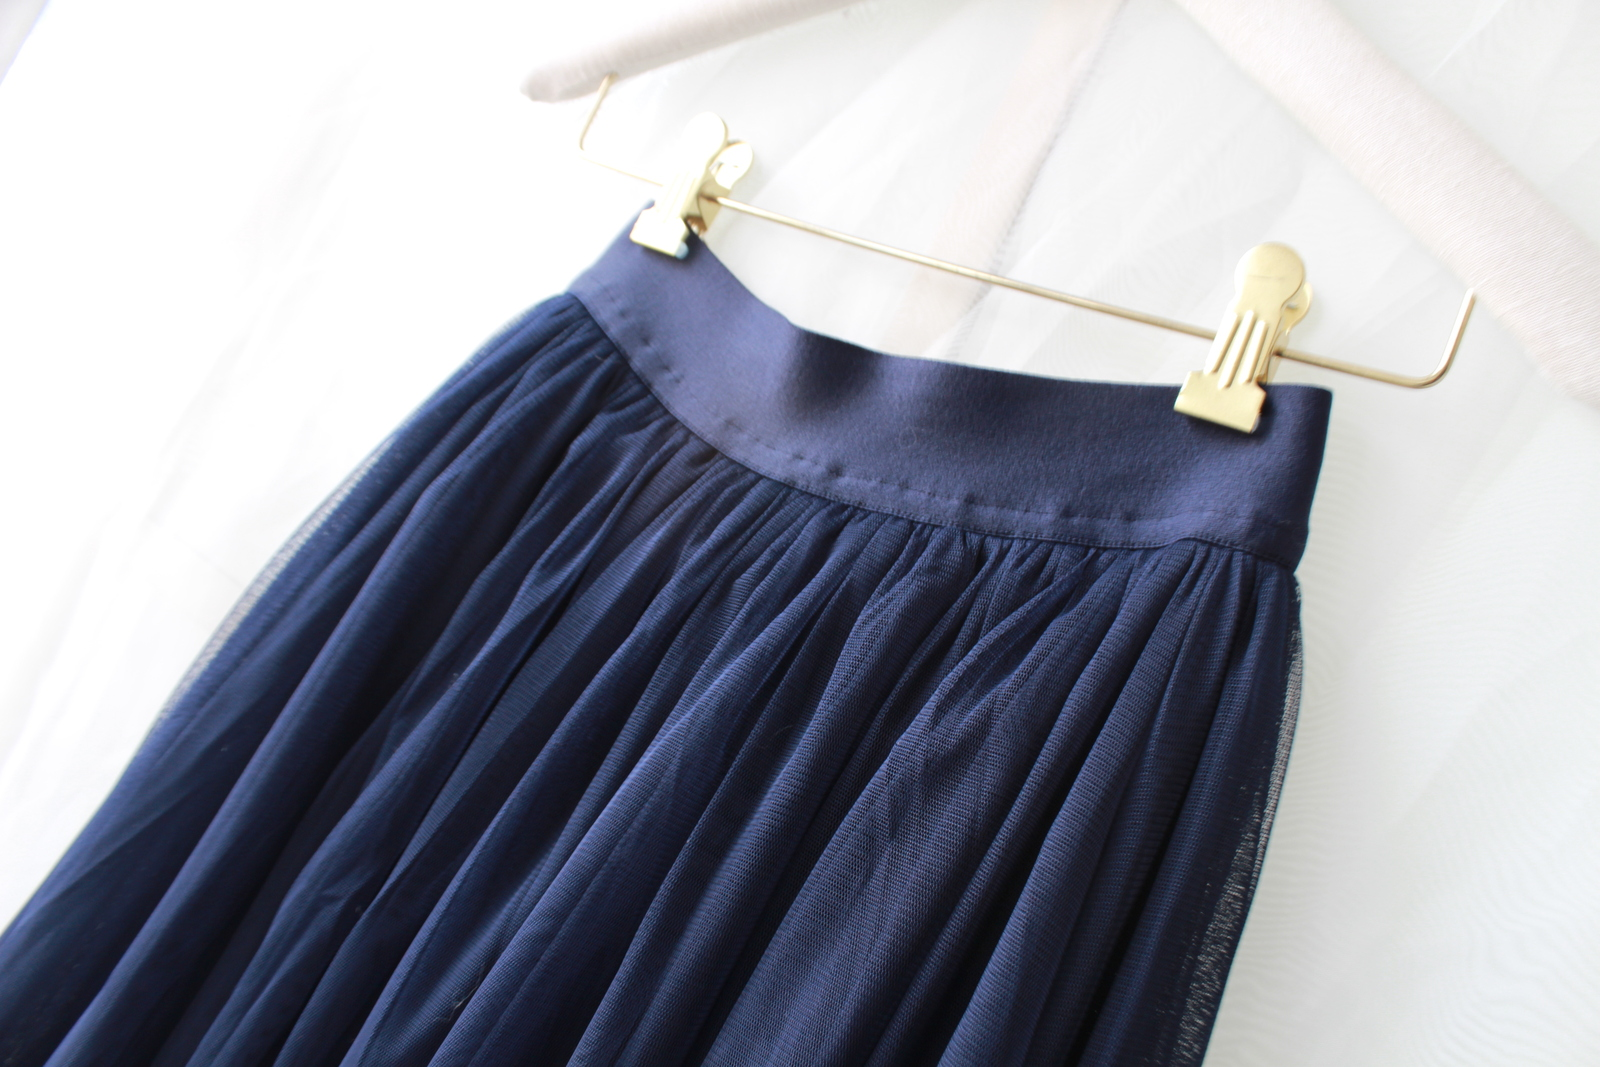 NAVY BLUE Elastic High Waist Tulle Maxi Skirt Navy Wedding Bridesmaid Tutu Skirt